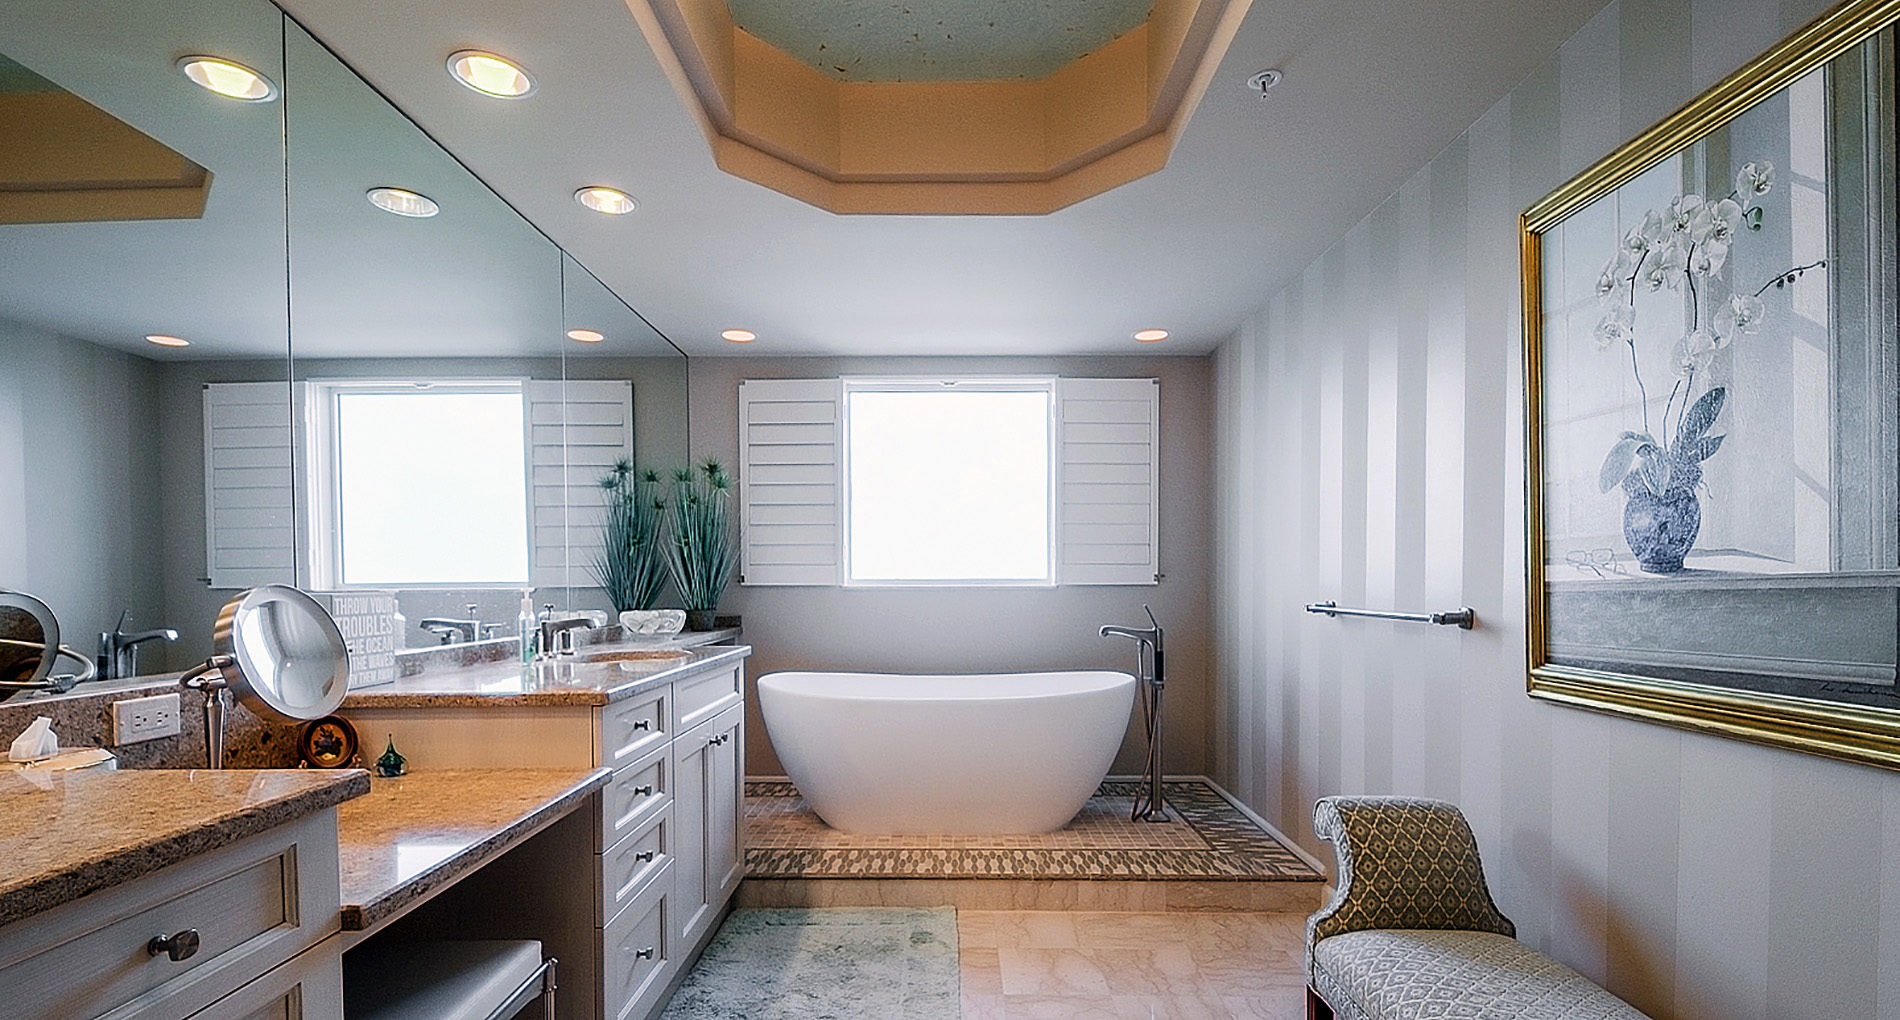 Orlando custom bathroom remodeling design alair homes orlando for Bathroom remodeling orlando fl